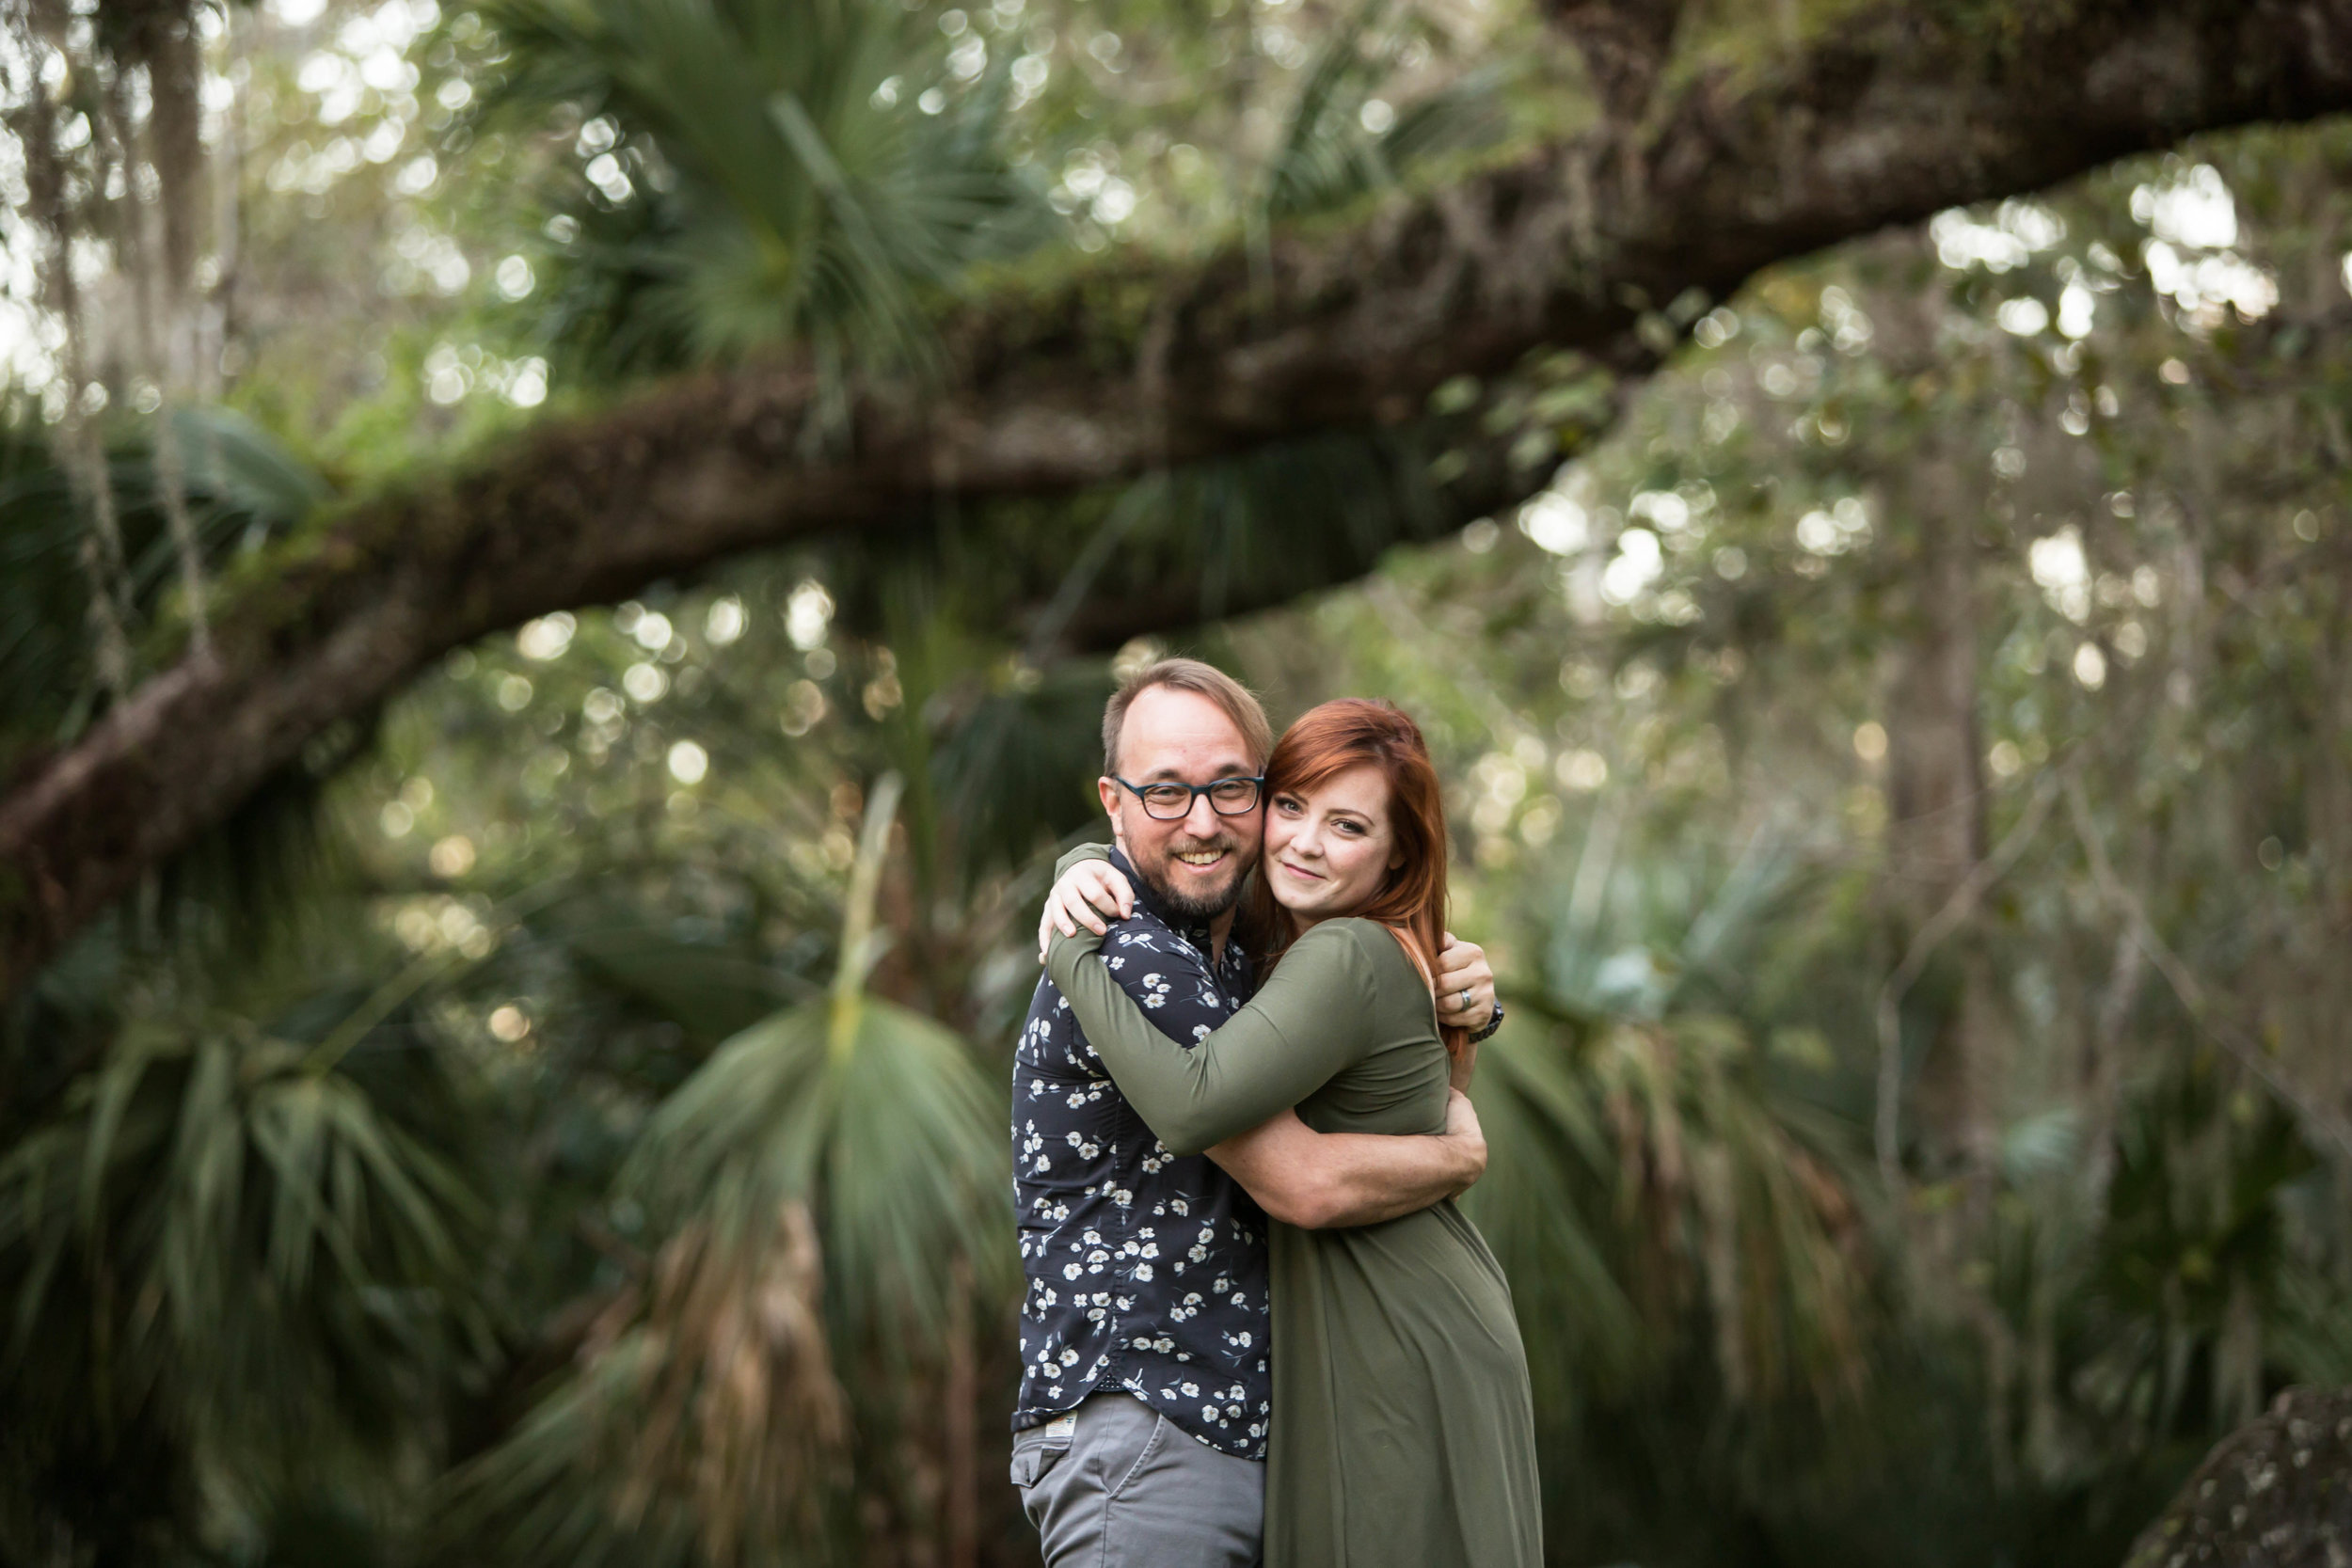 Marble_Falls_Anniversary_Photographer_Jenna_Petty_Ormond_Beach_Florida_14.jpg